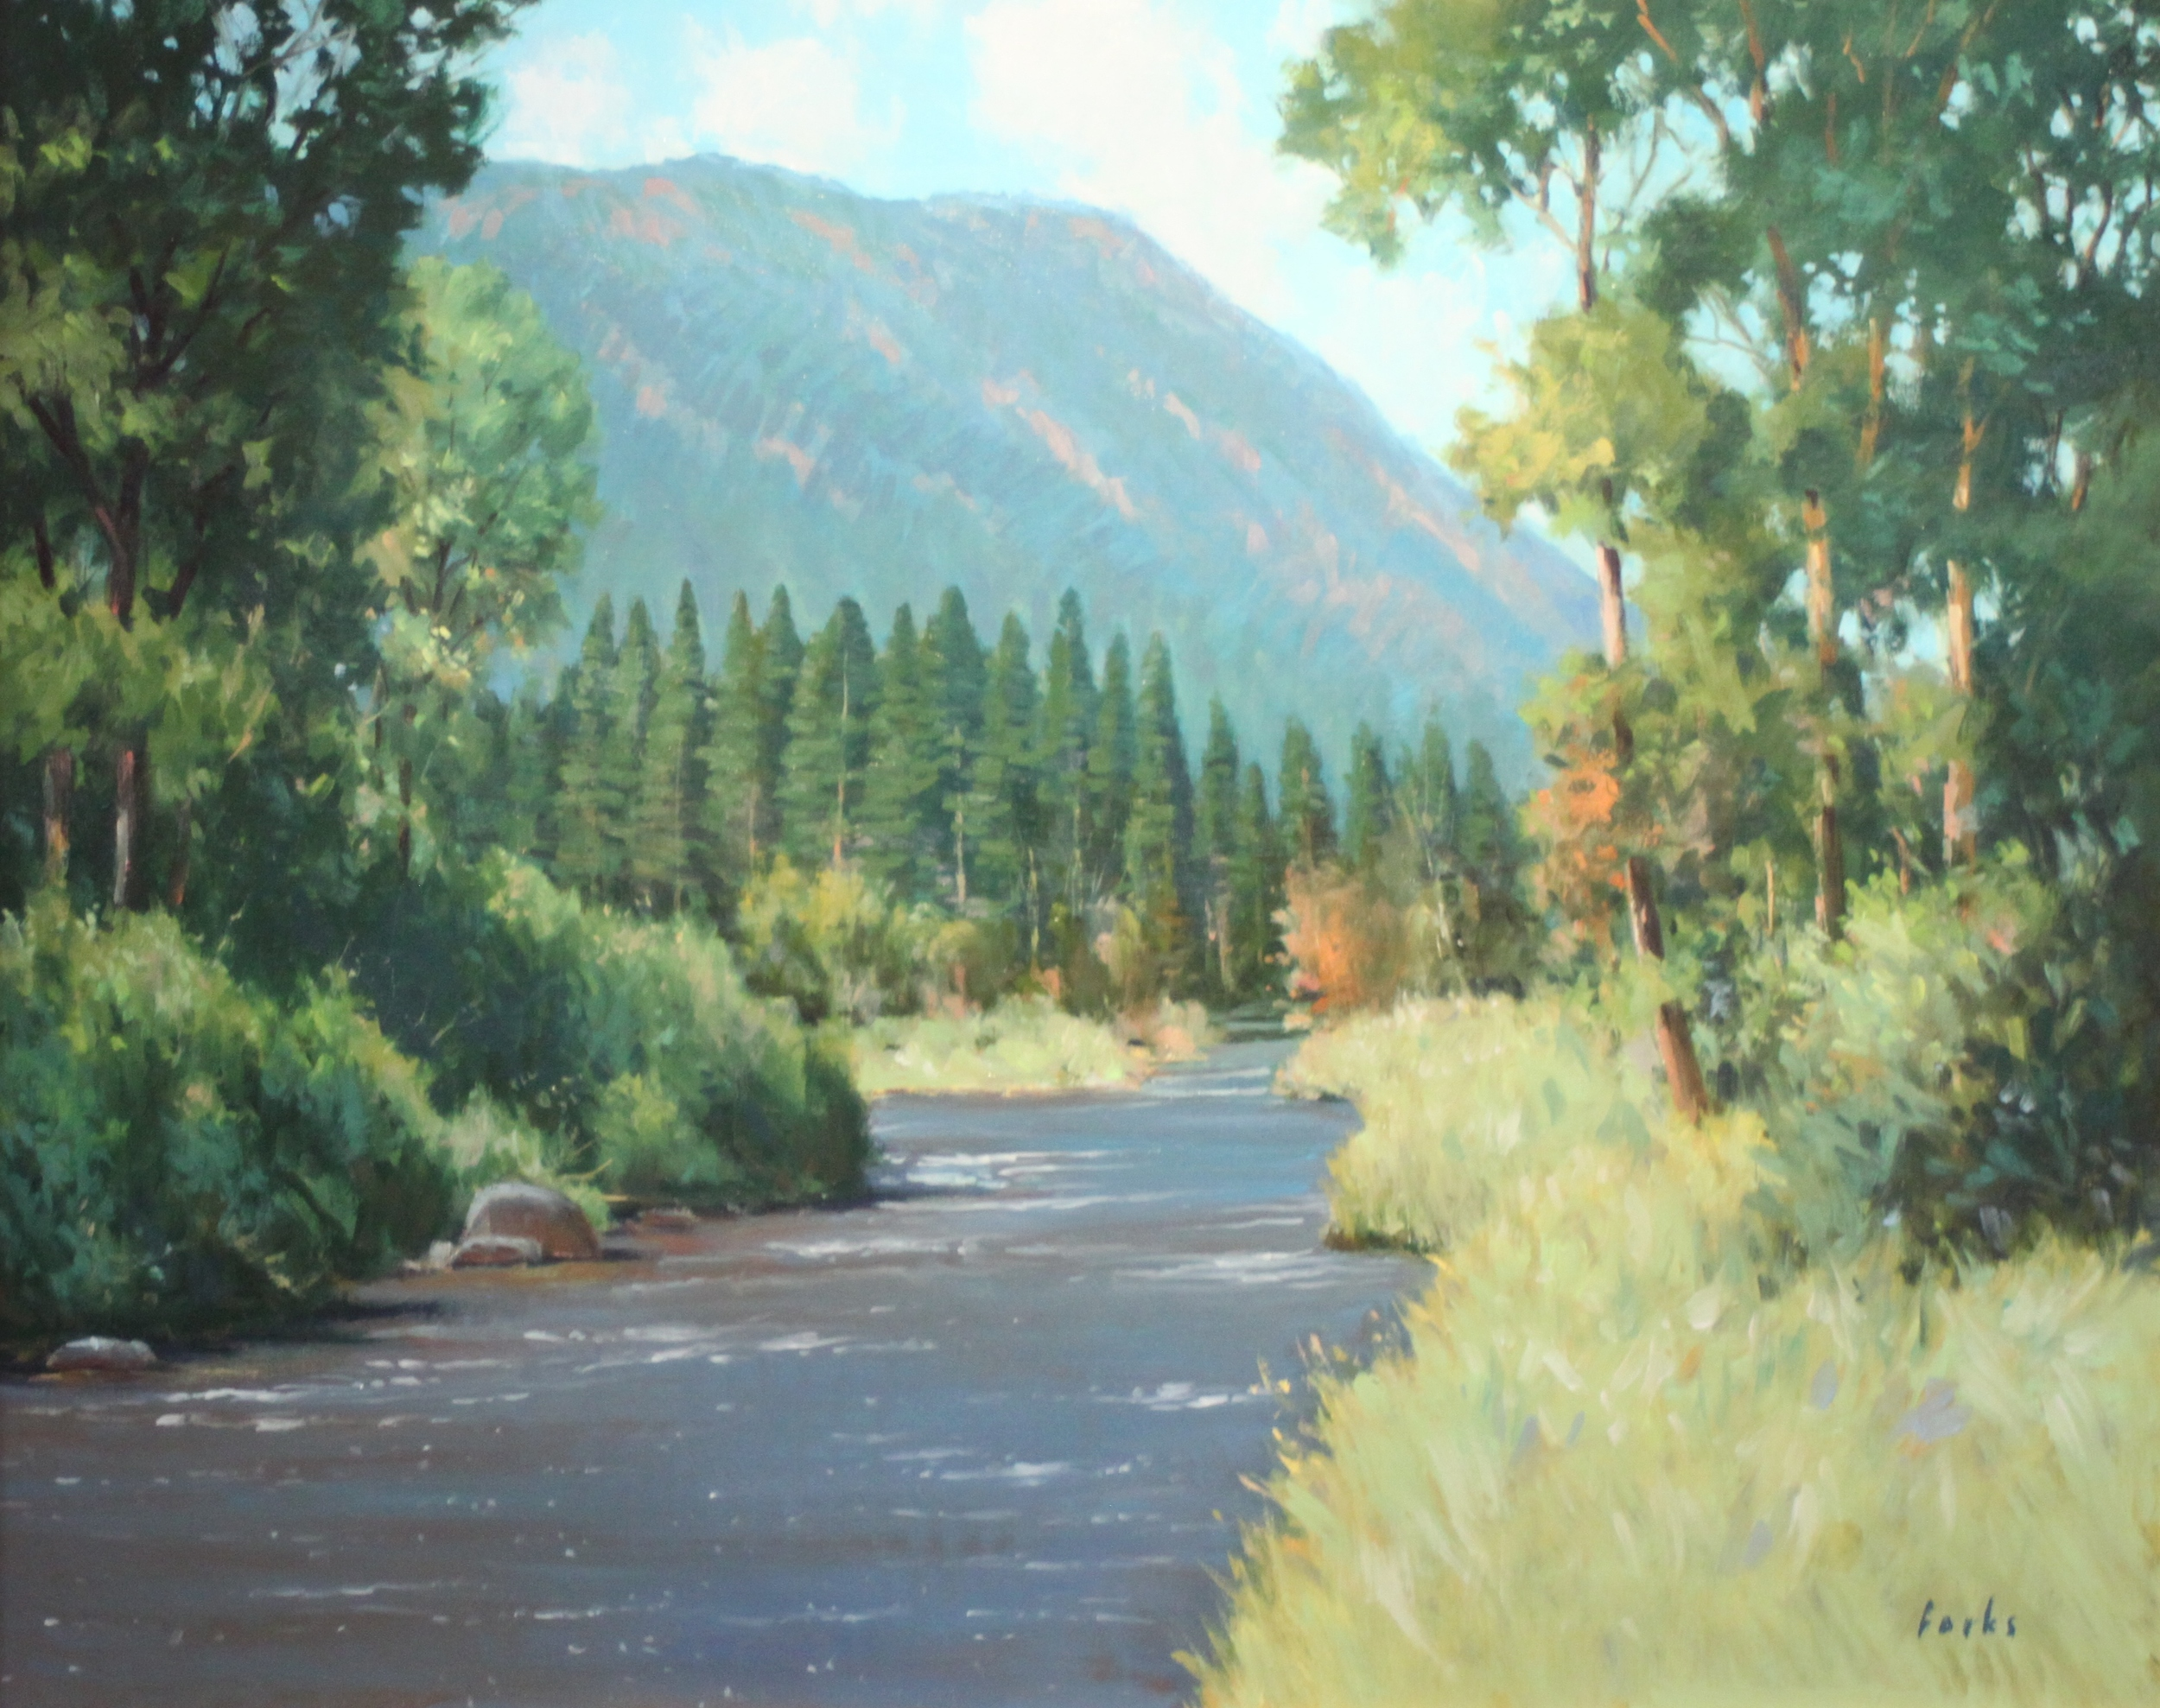 David Forks On the River 24X30 Oil on Canvas $2,160.jpg